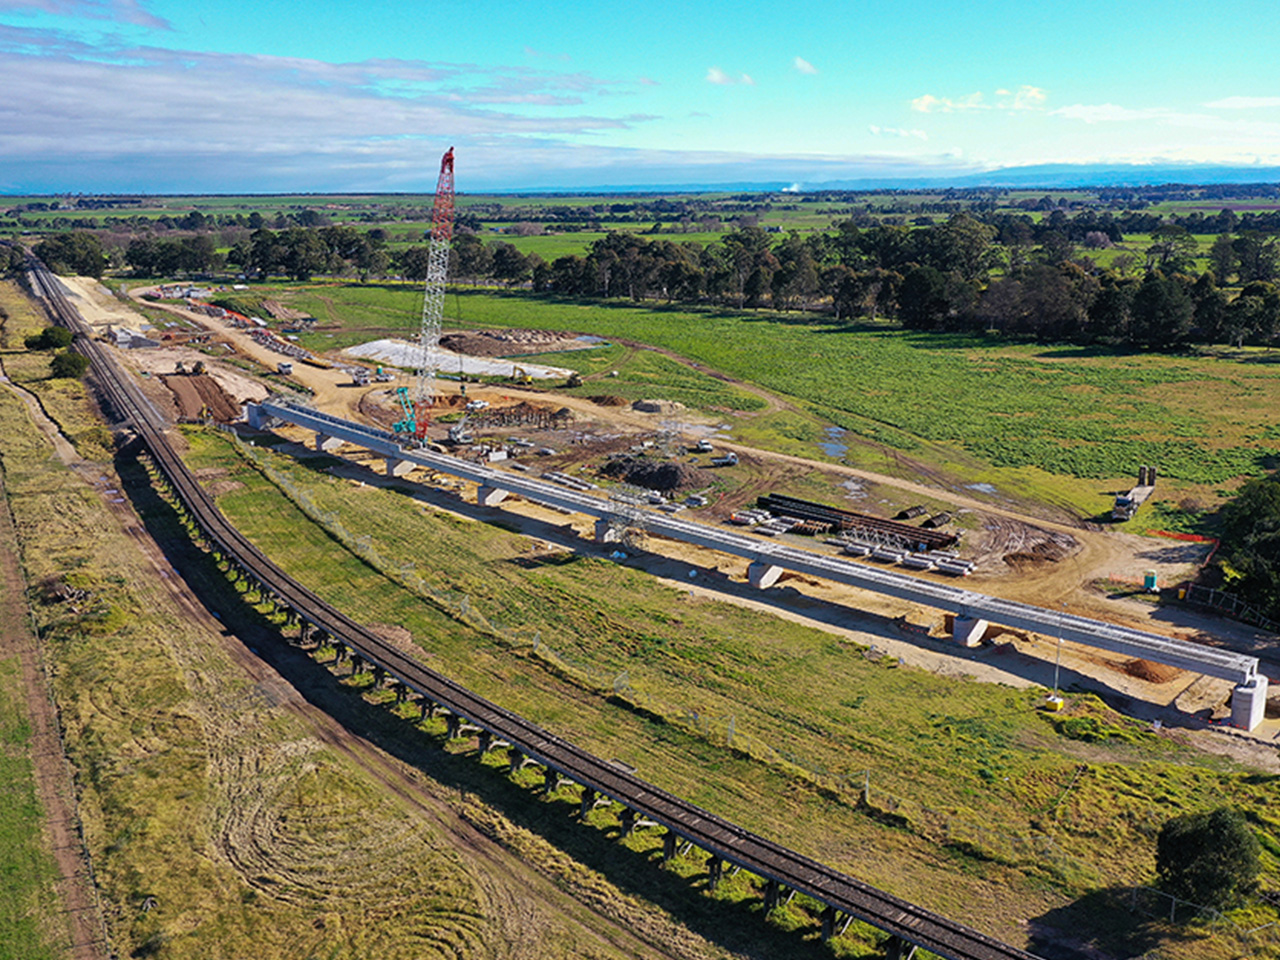 Aerial view of progress of the bridge half completed